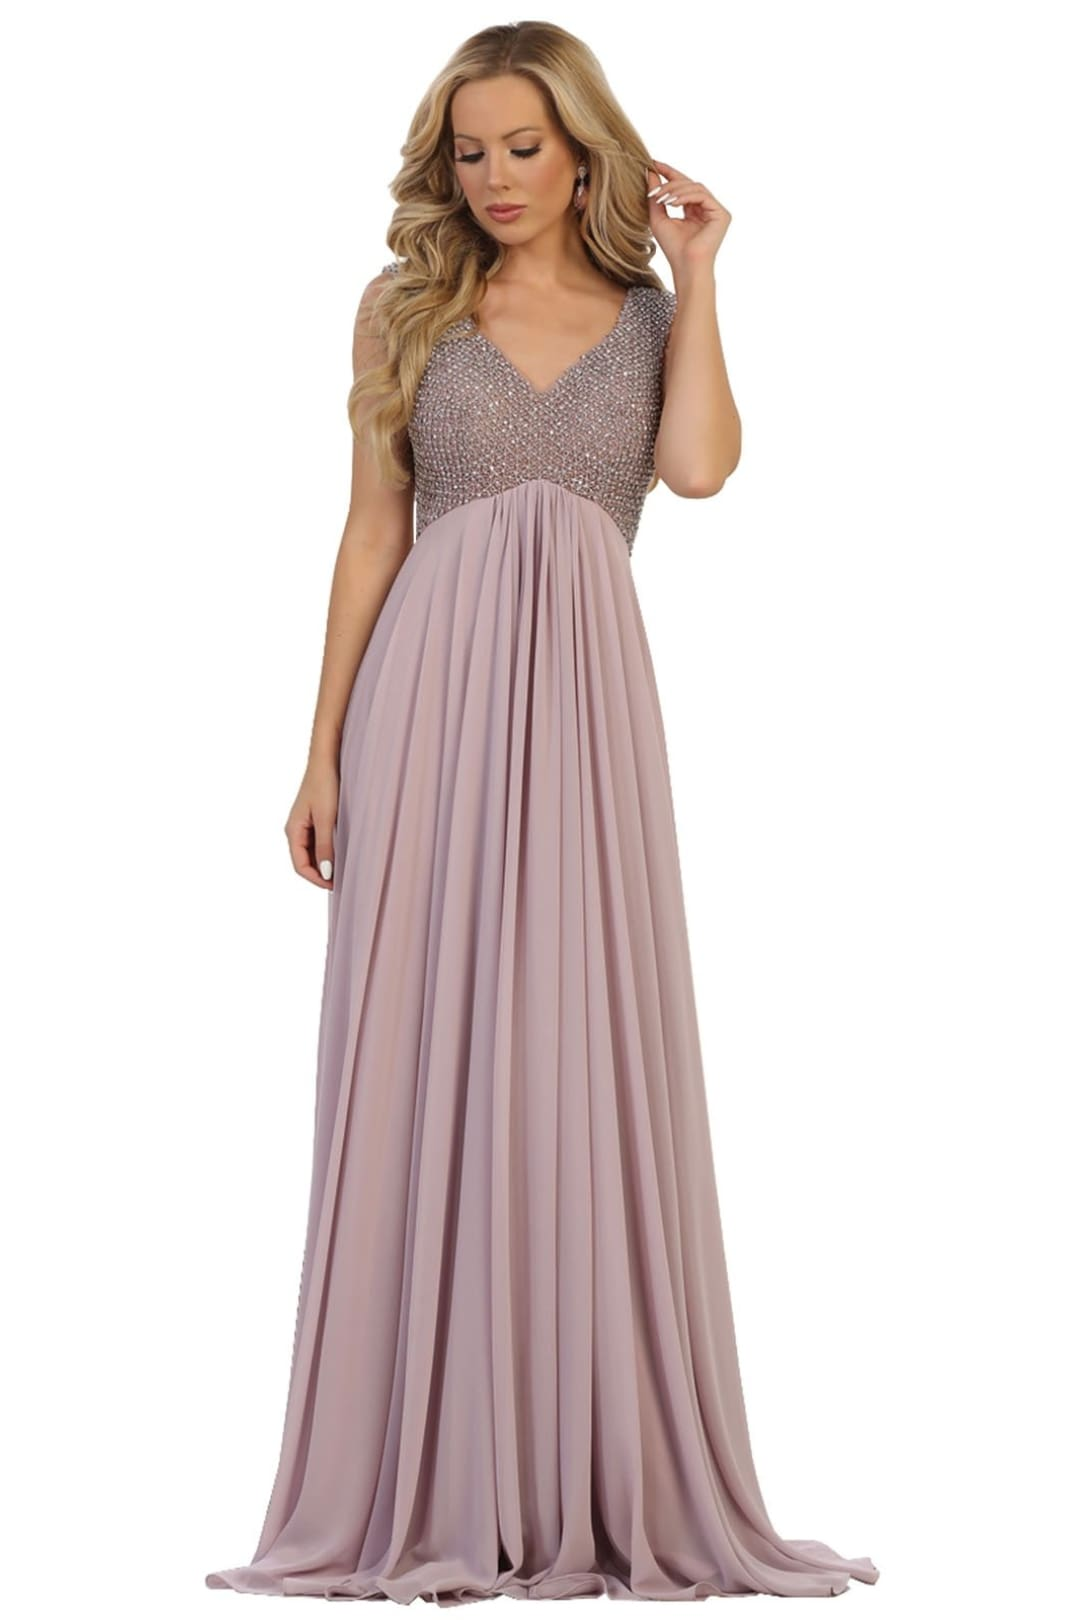 Jewel Adorned Prom Dress - Mauve / 4